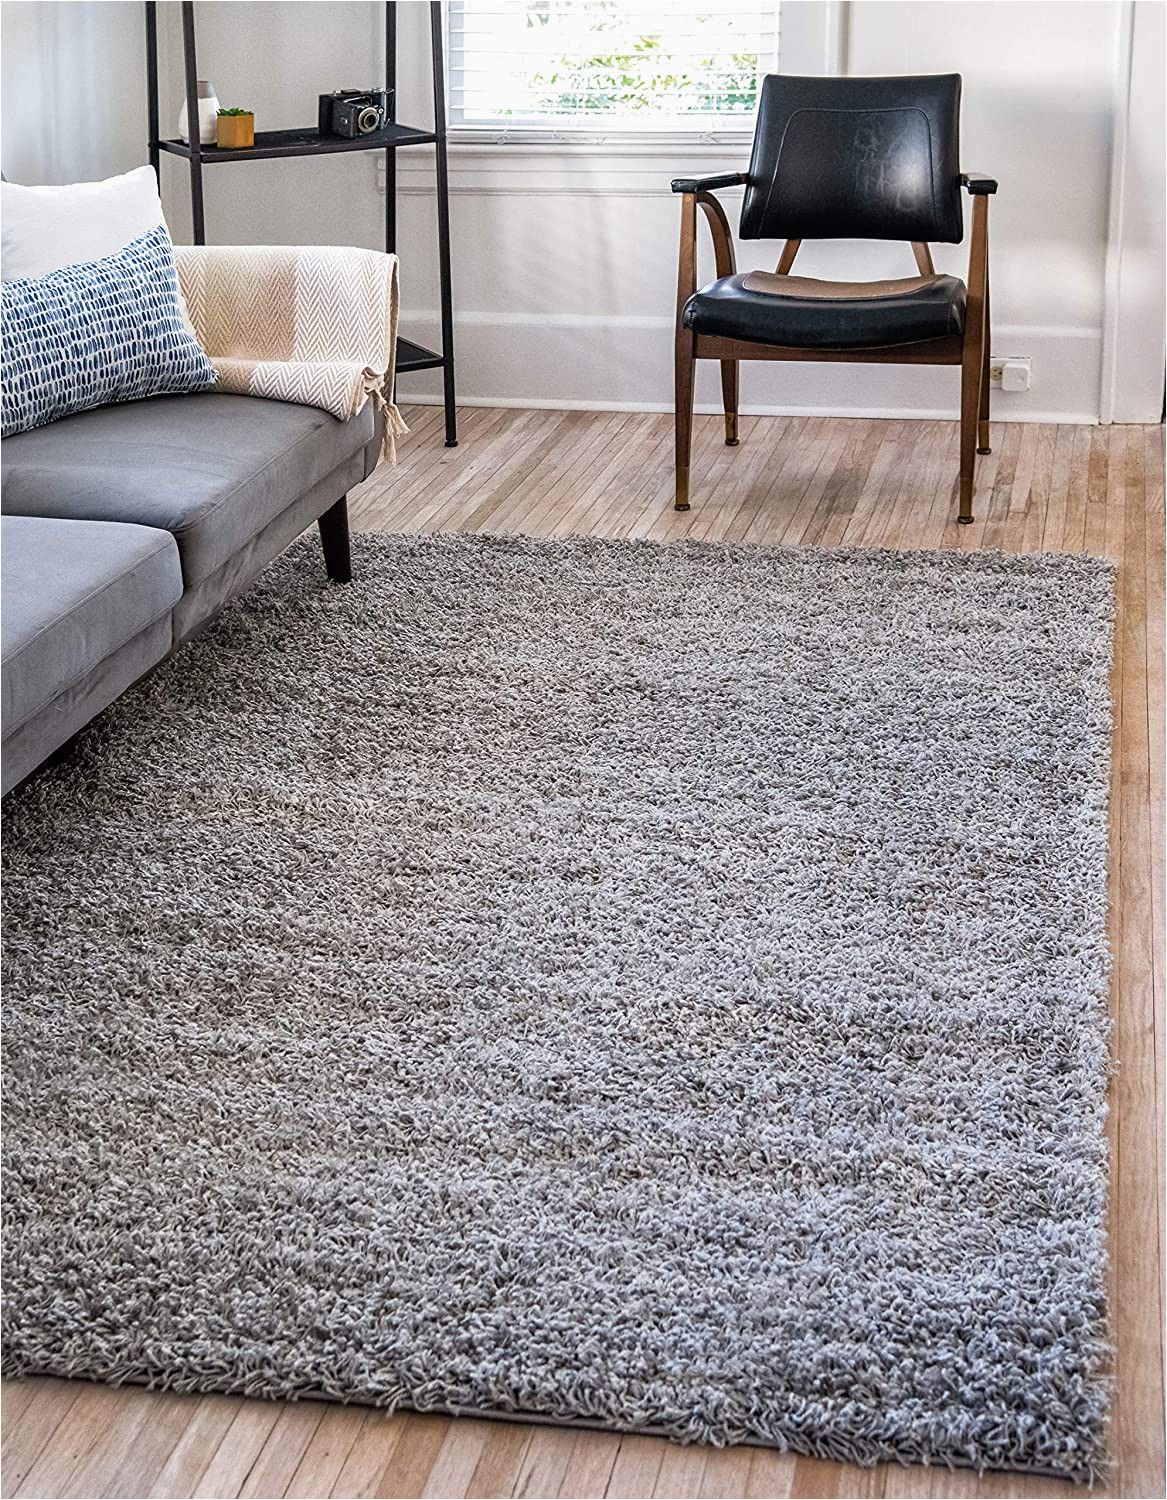 Solid Grey area Rug 5×7 Unique Loom solo solid Shag Collection Modern Plush Cloud Gray area Rug 5 0 X 8 0